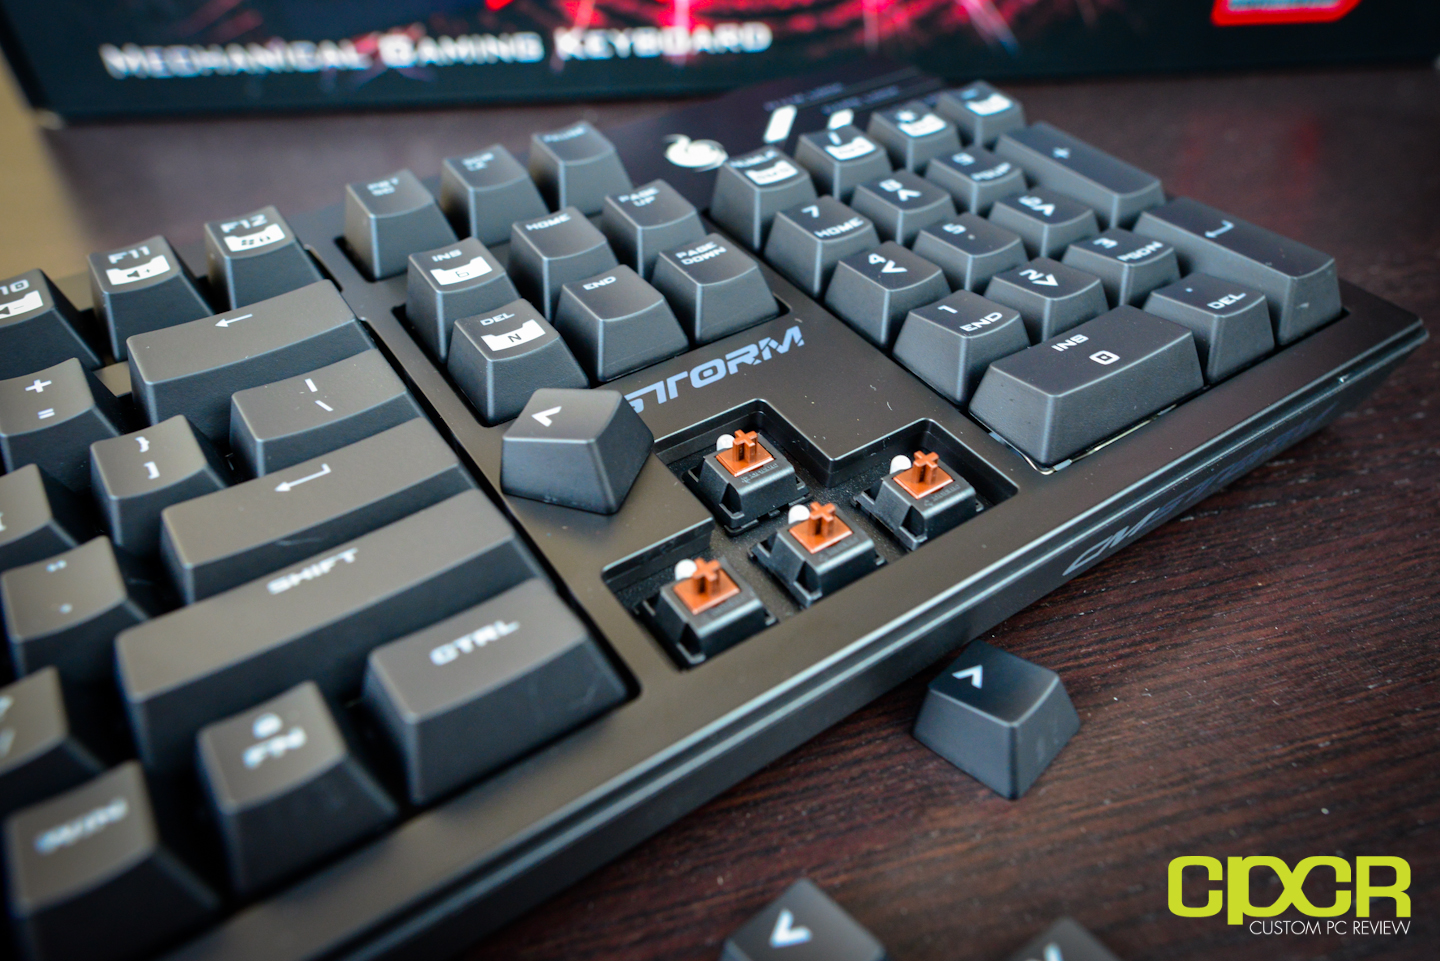 ef484aebe41 Pulling a couple keycaps off here, we can see that Cooler Master is using Cherry  MX ...